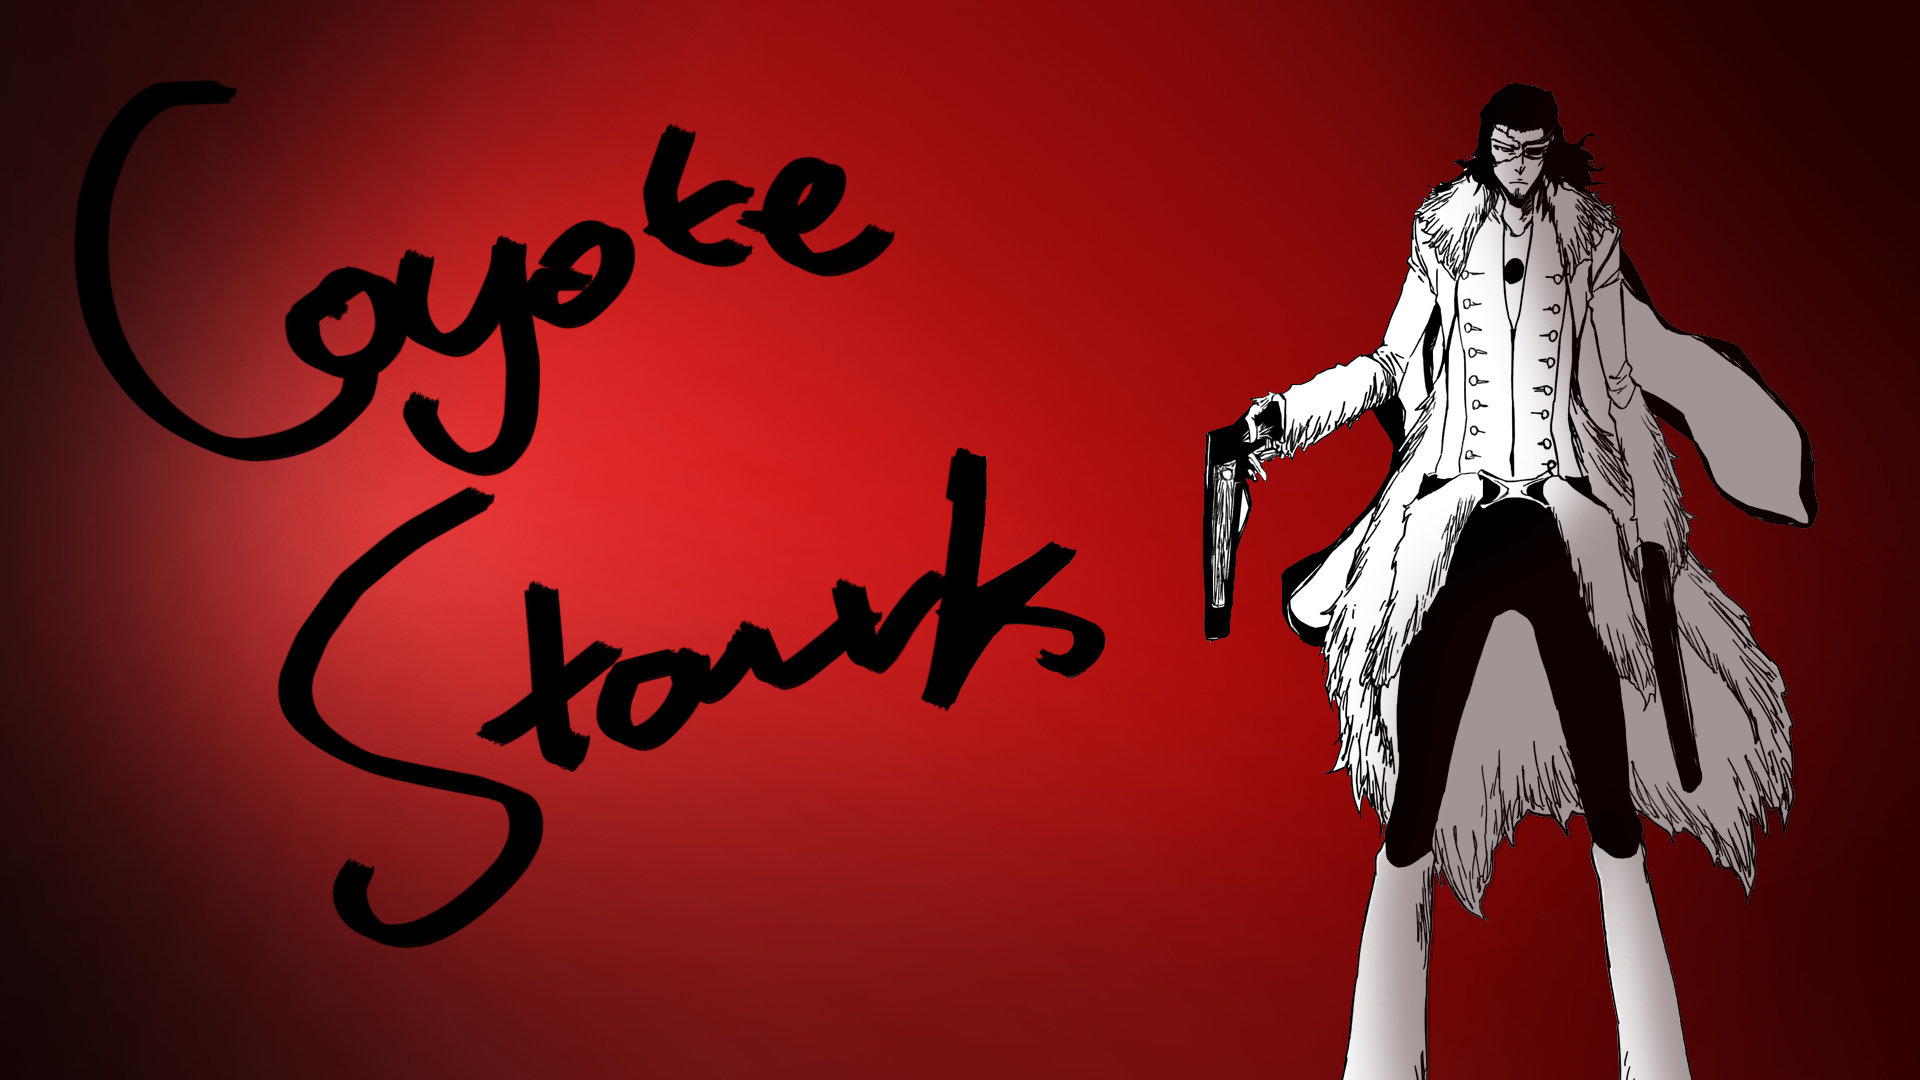 Awesome Coyote Starrk free wallpaper ID:417034 for hd 1920x1080 desktop